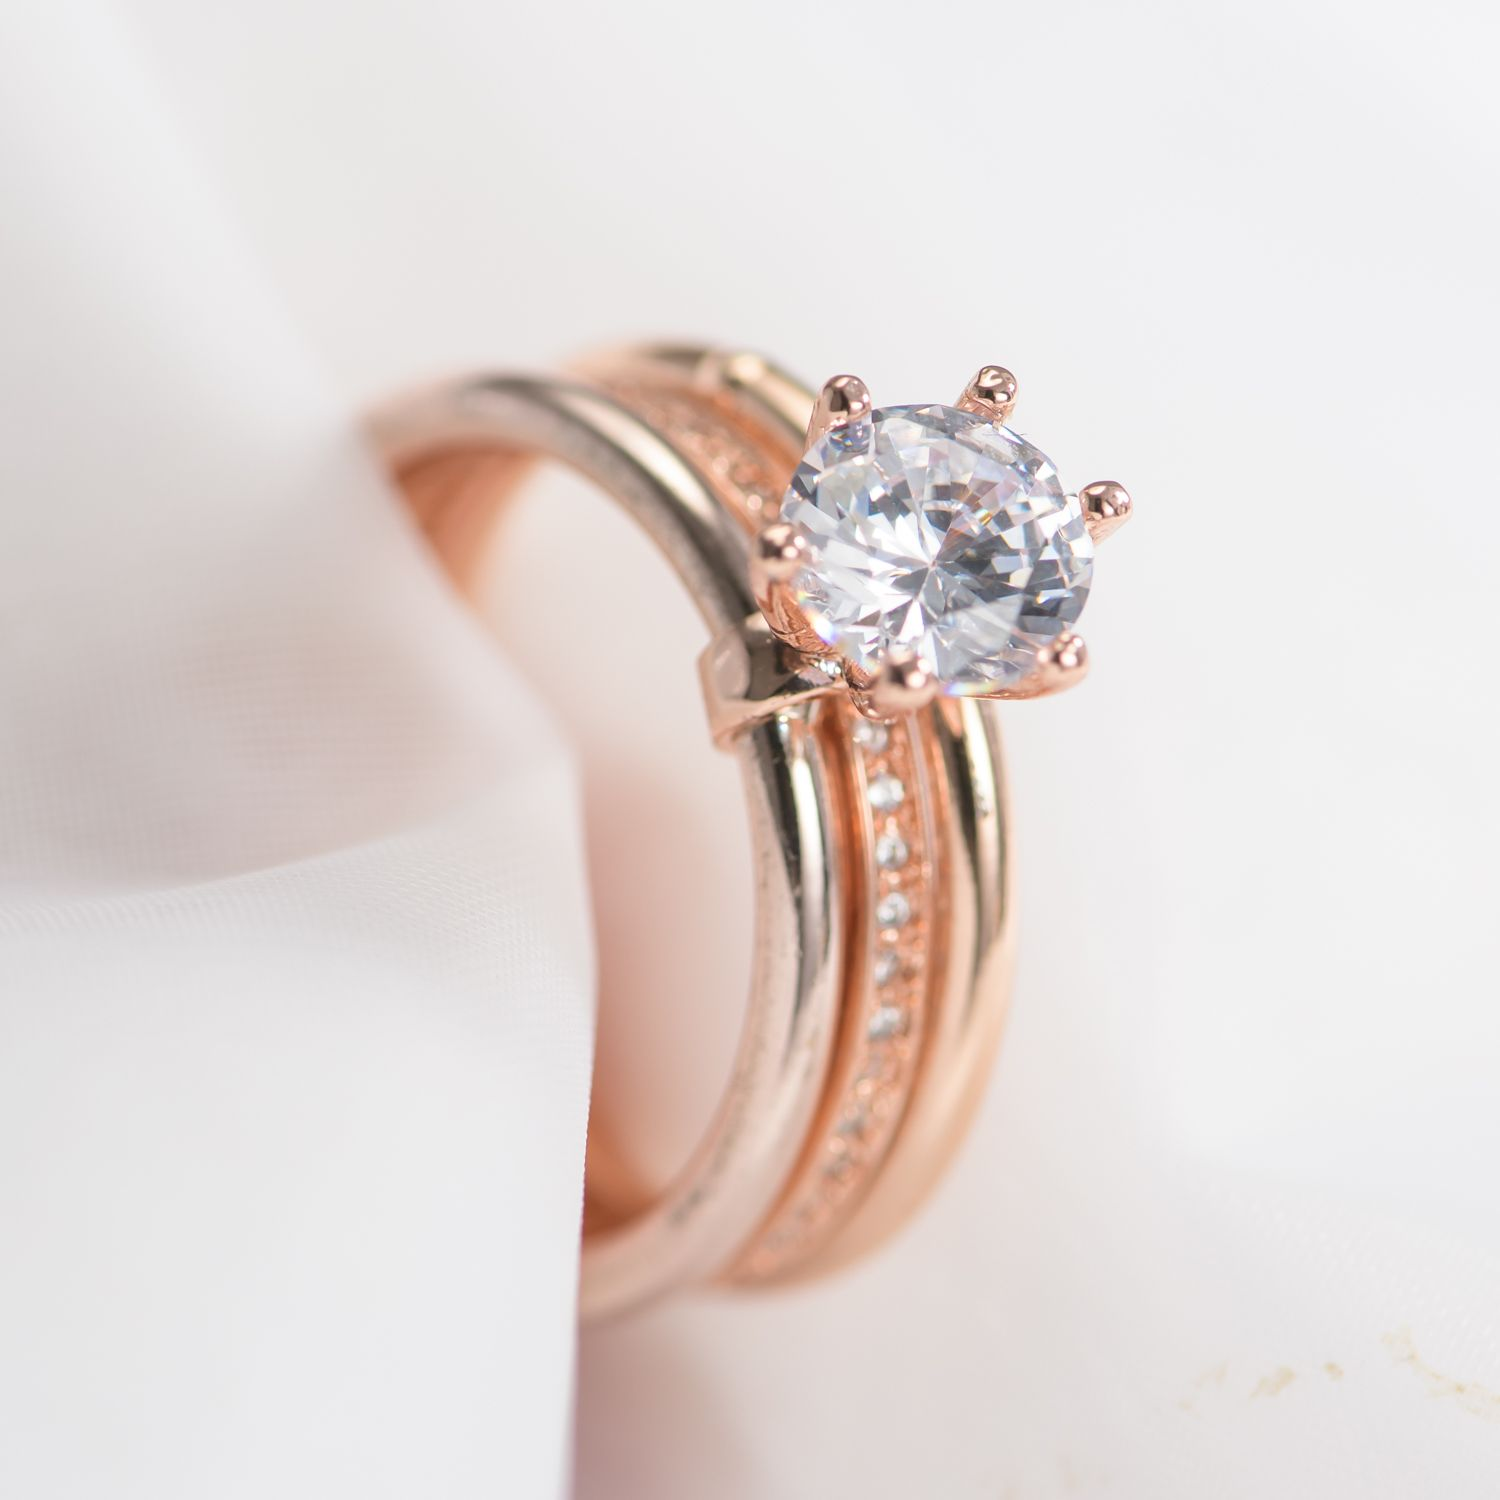 2019 Copper Rehinestone Wedding Engagement Ring